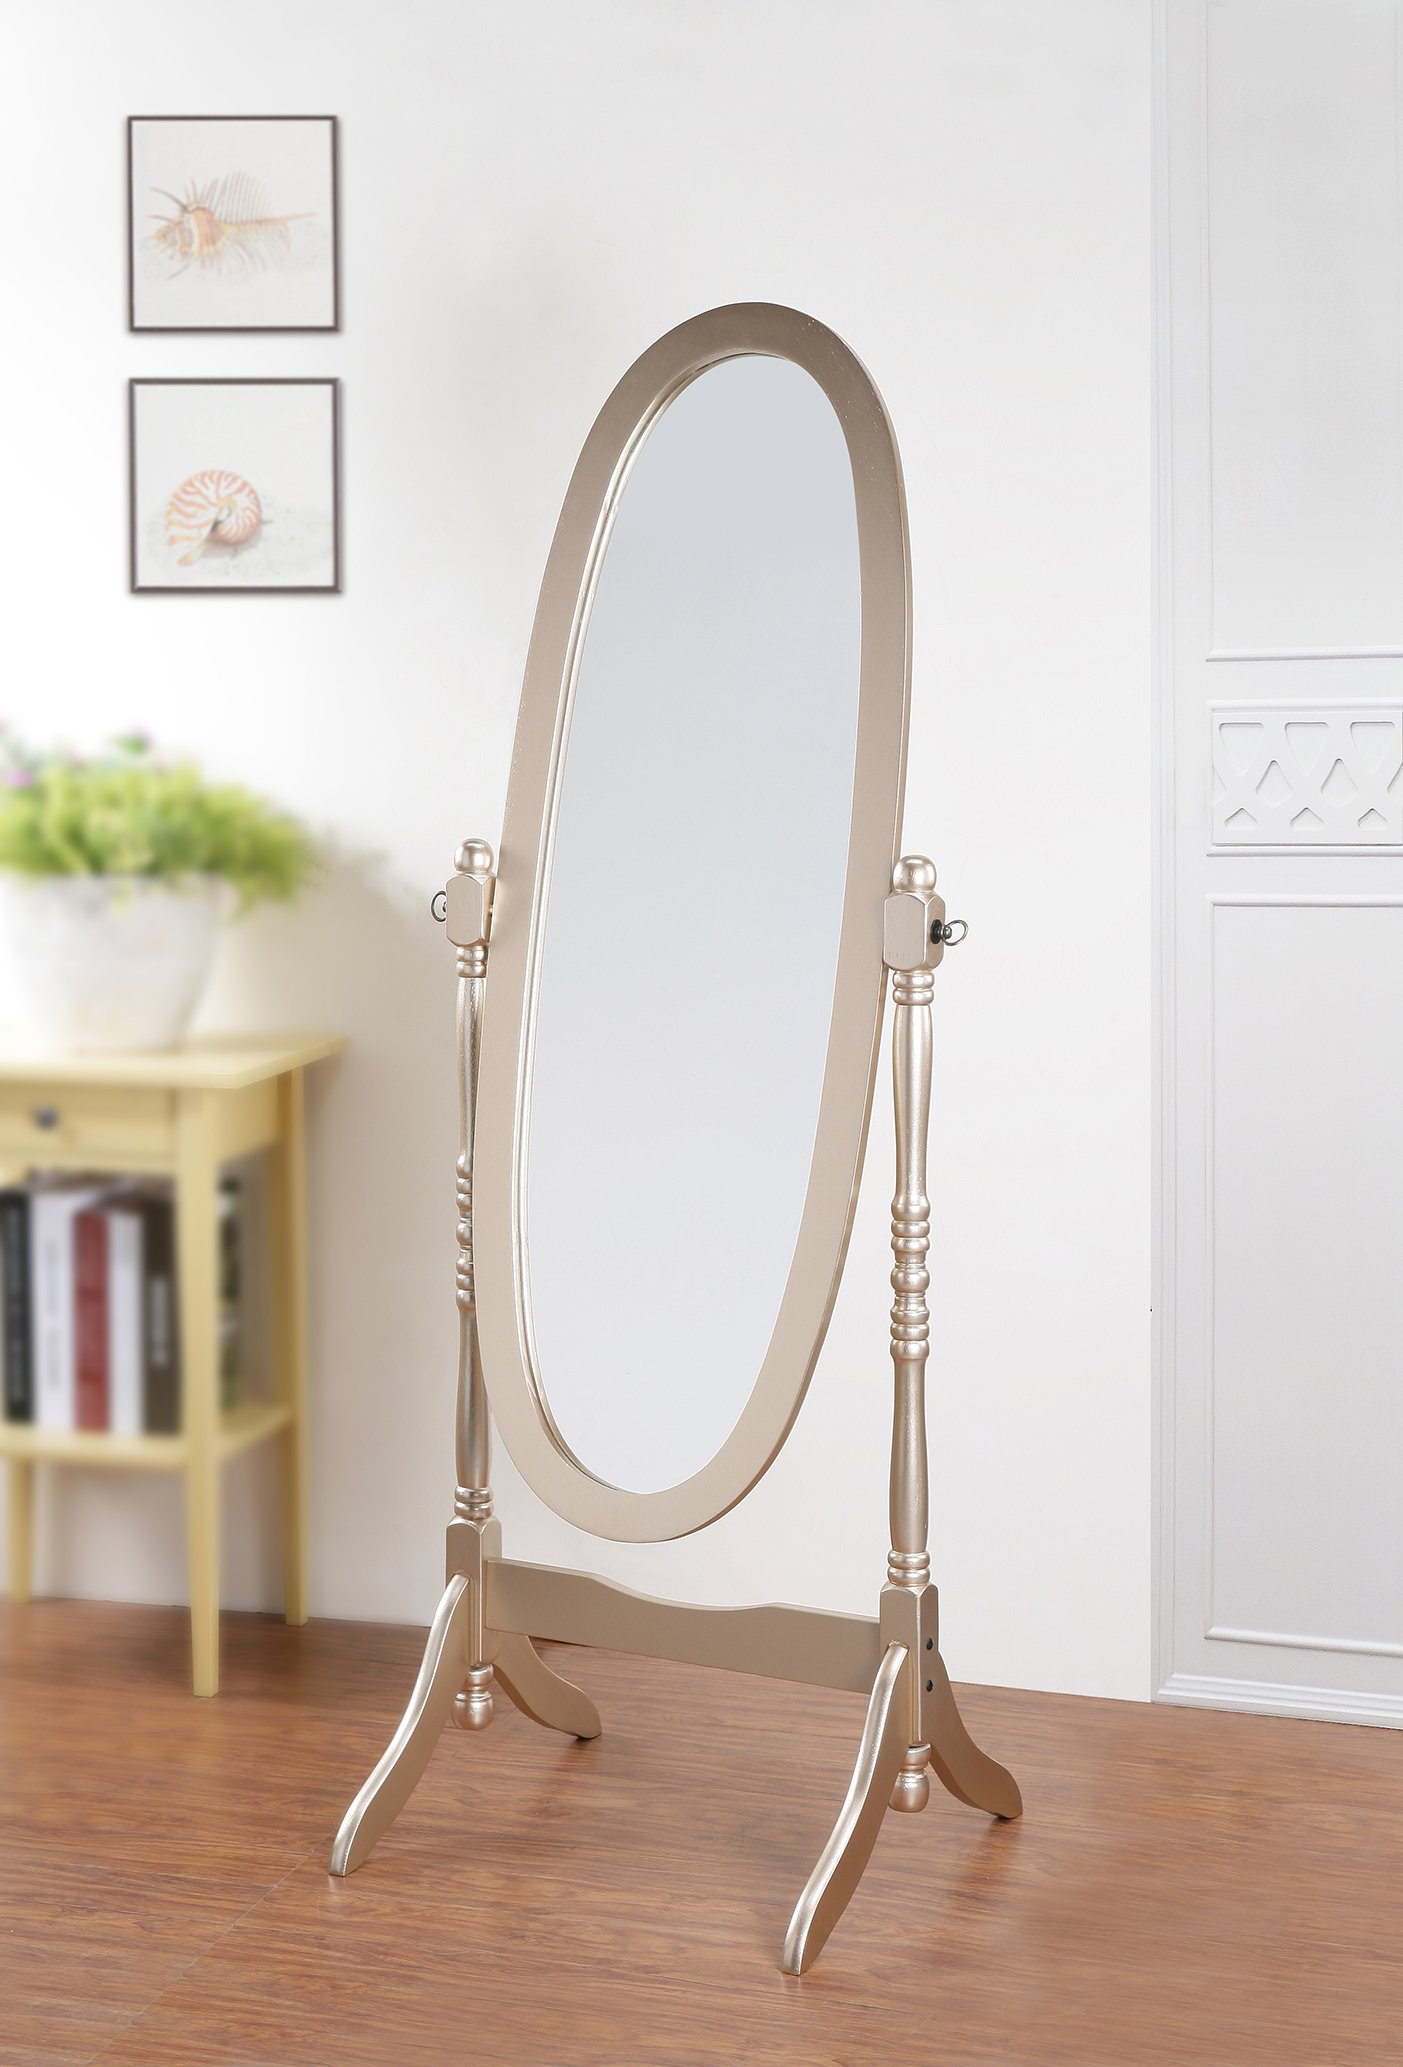 None Wooden Cheval Floor Mirror, Golden Finish by eHomeProducts